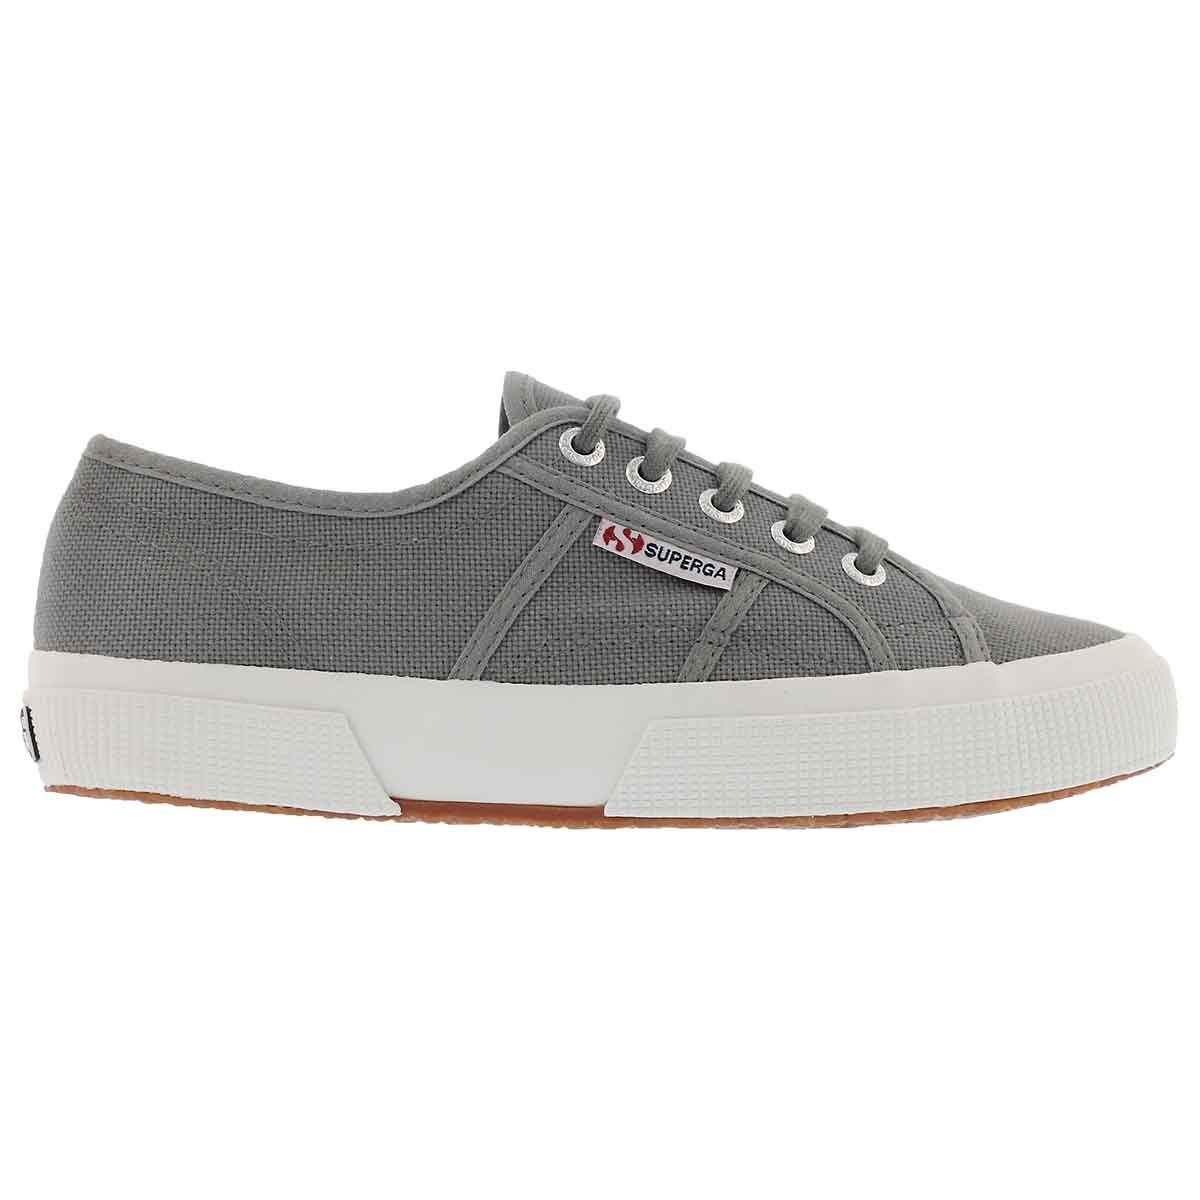 Lds Cotu Classic grey canvas sneaker